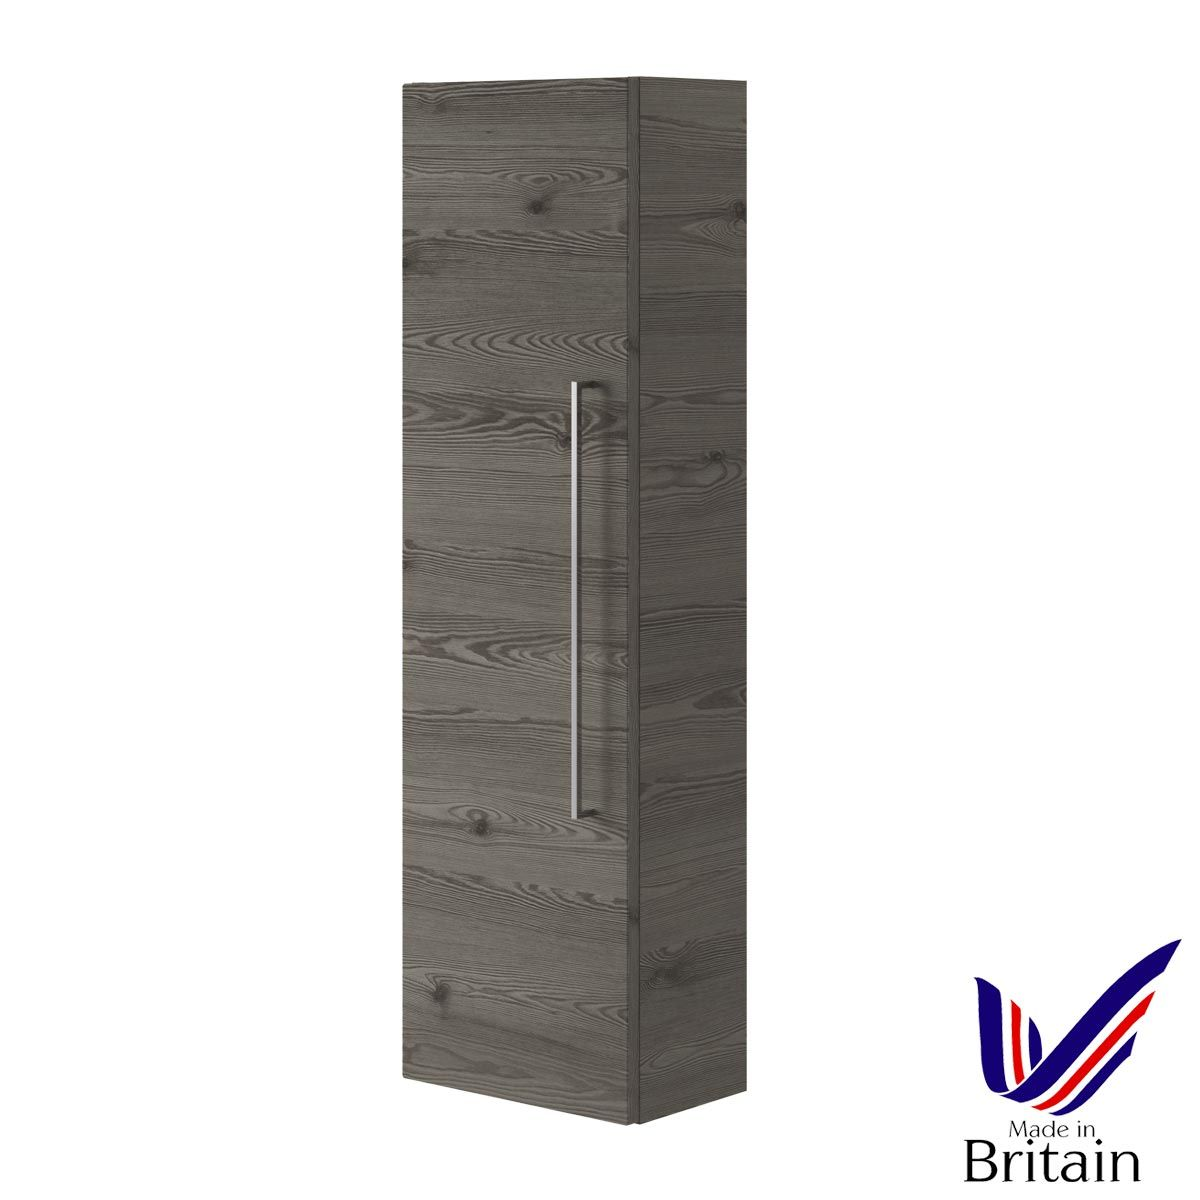 Mito Anthracite Wall Hung Tall Unit 350mm